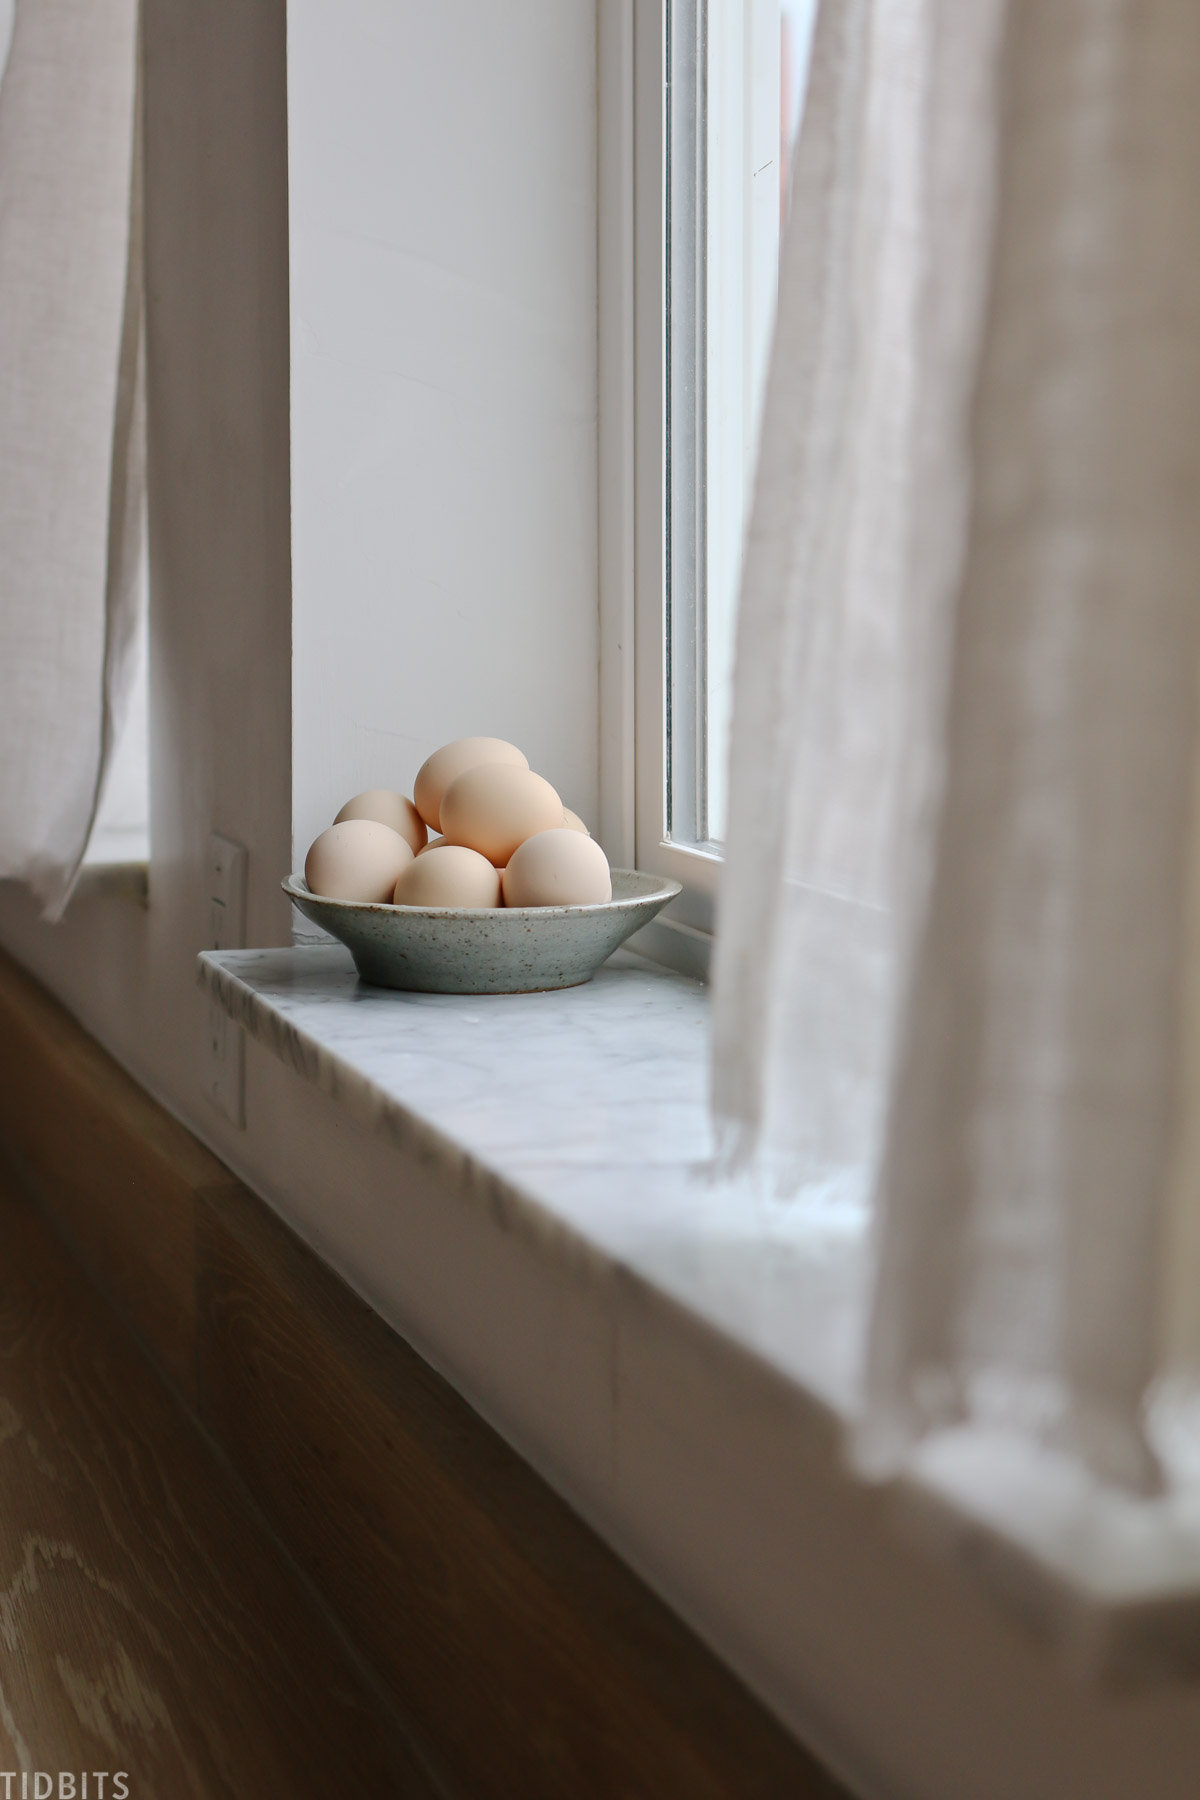 fresh eggs in a windowsill